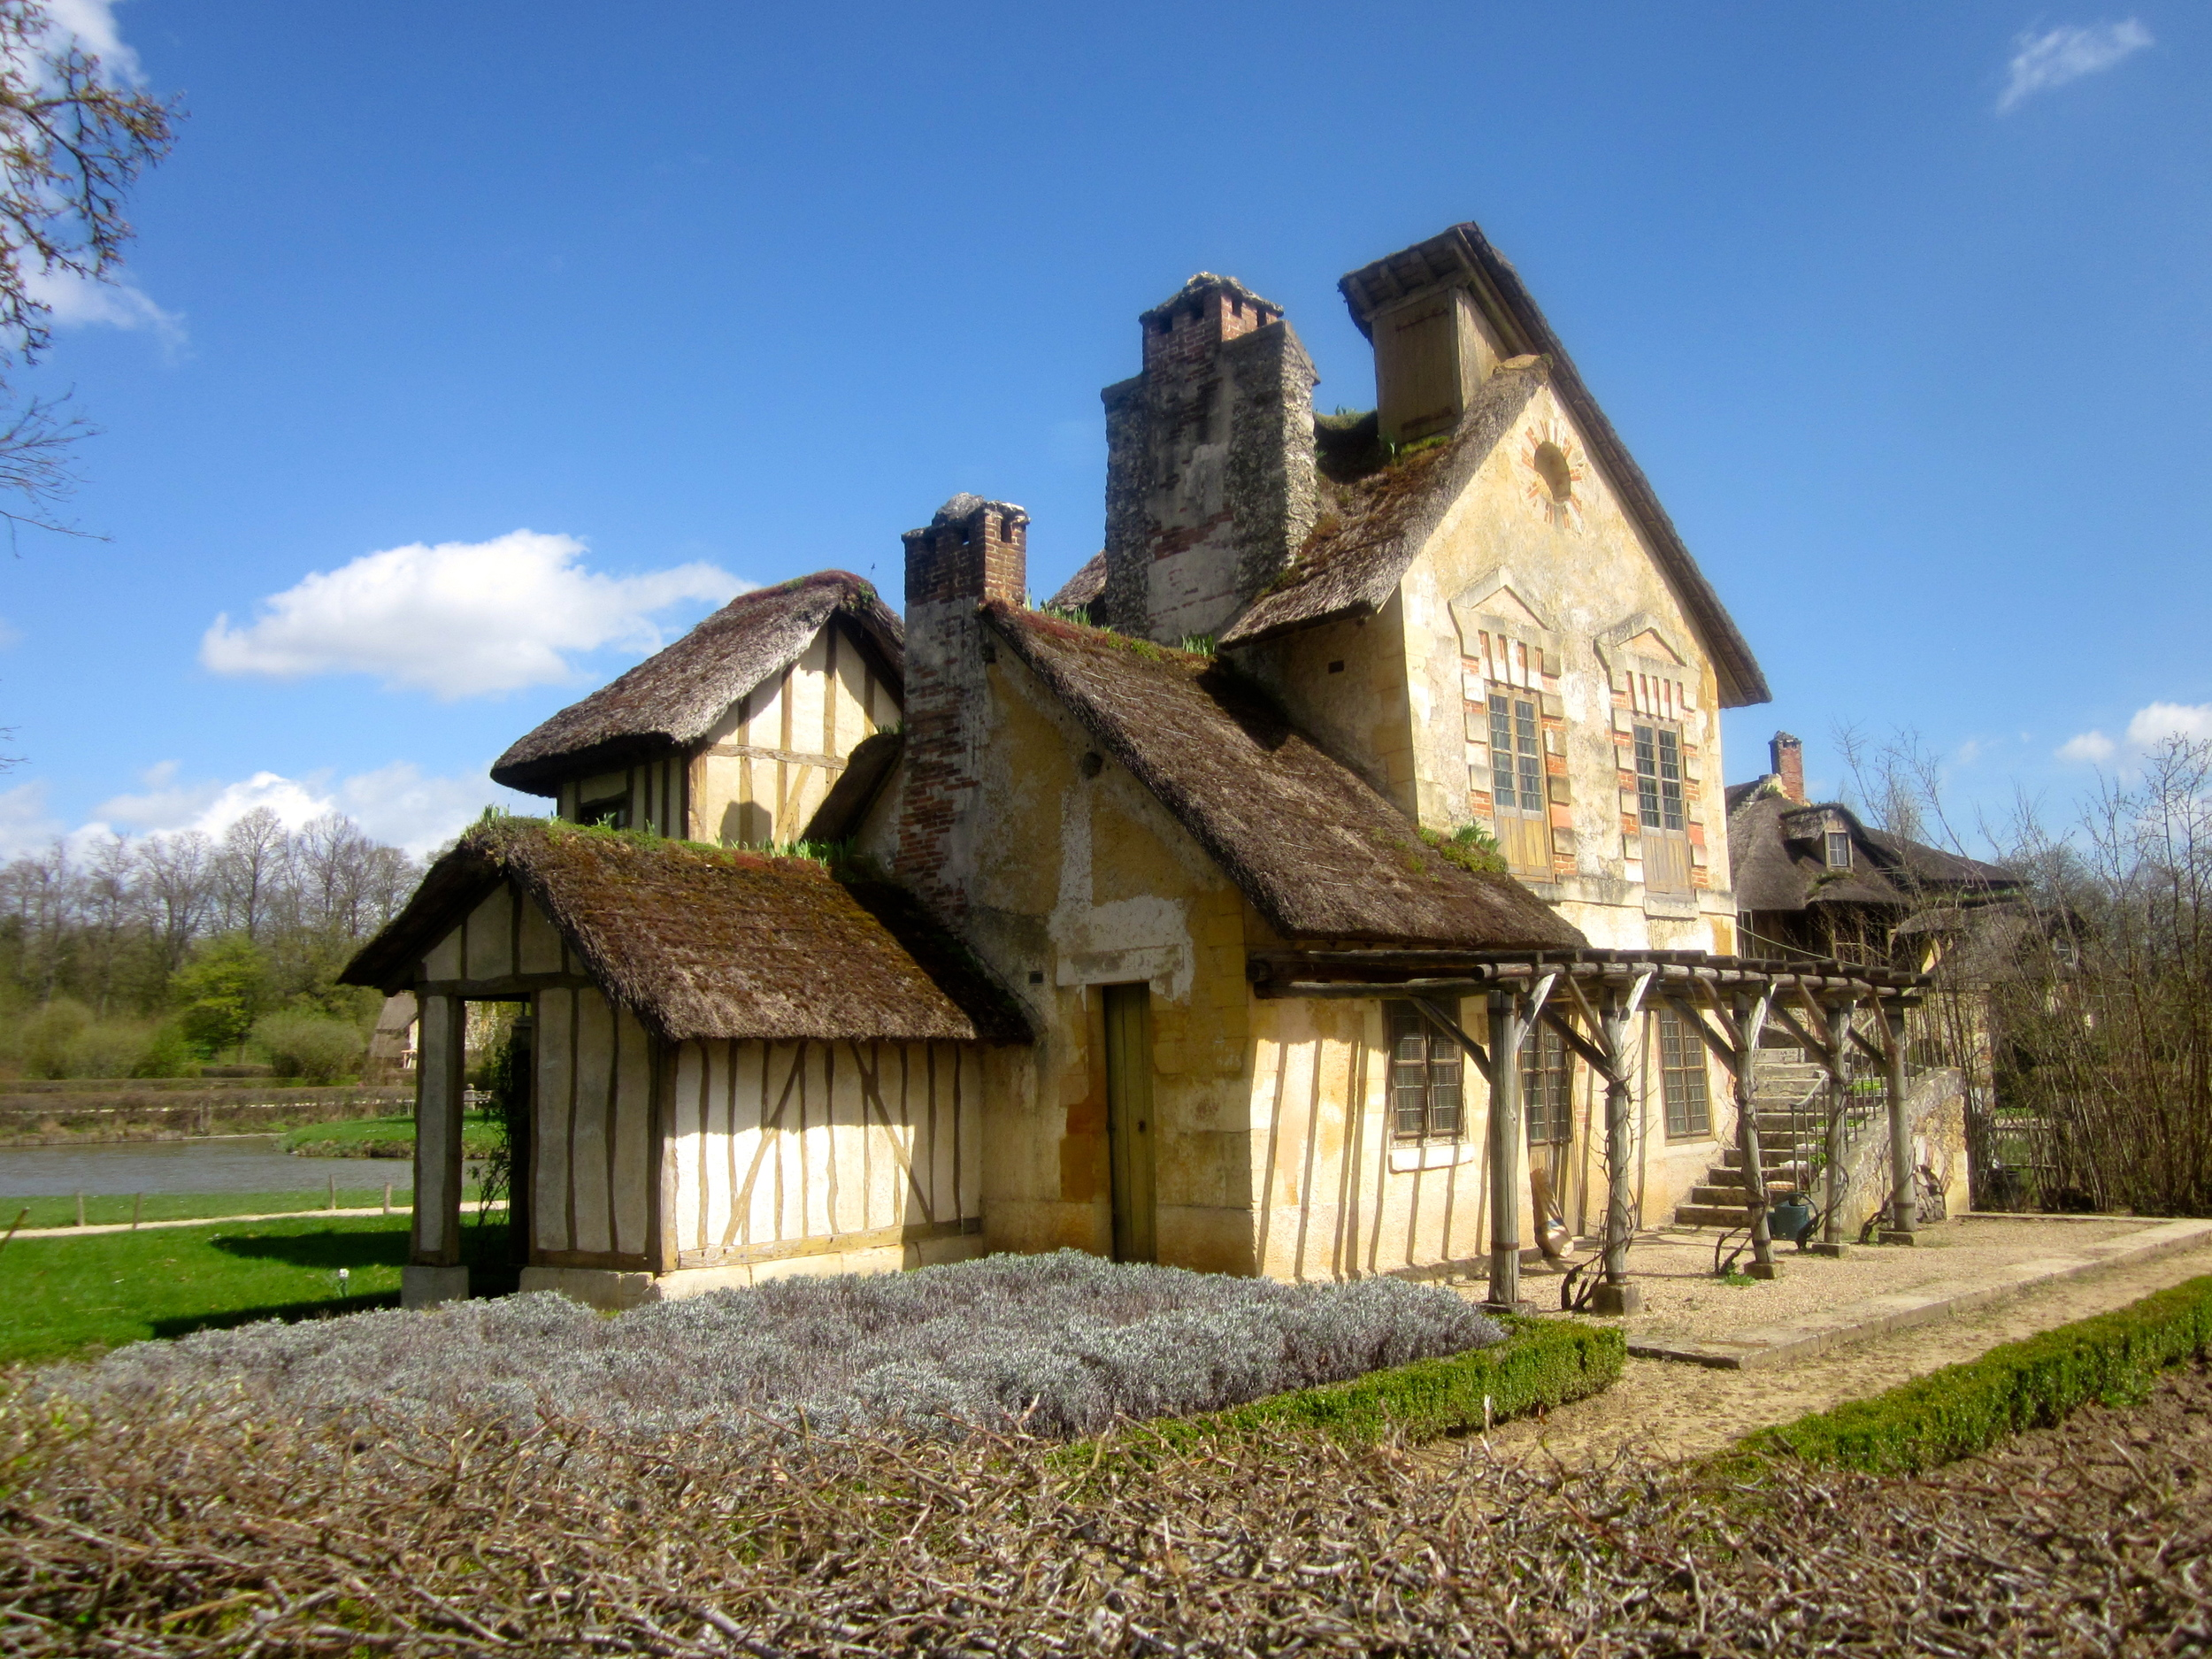 one of dwellings in hamlet at the Gardens of Villandry, Loire Valley